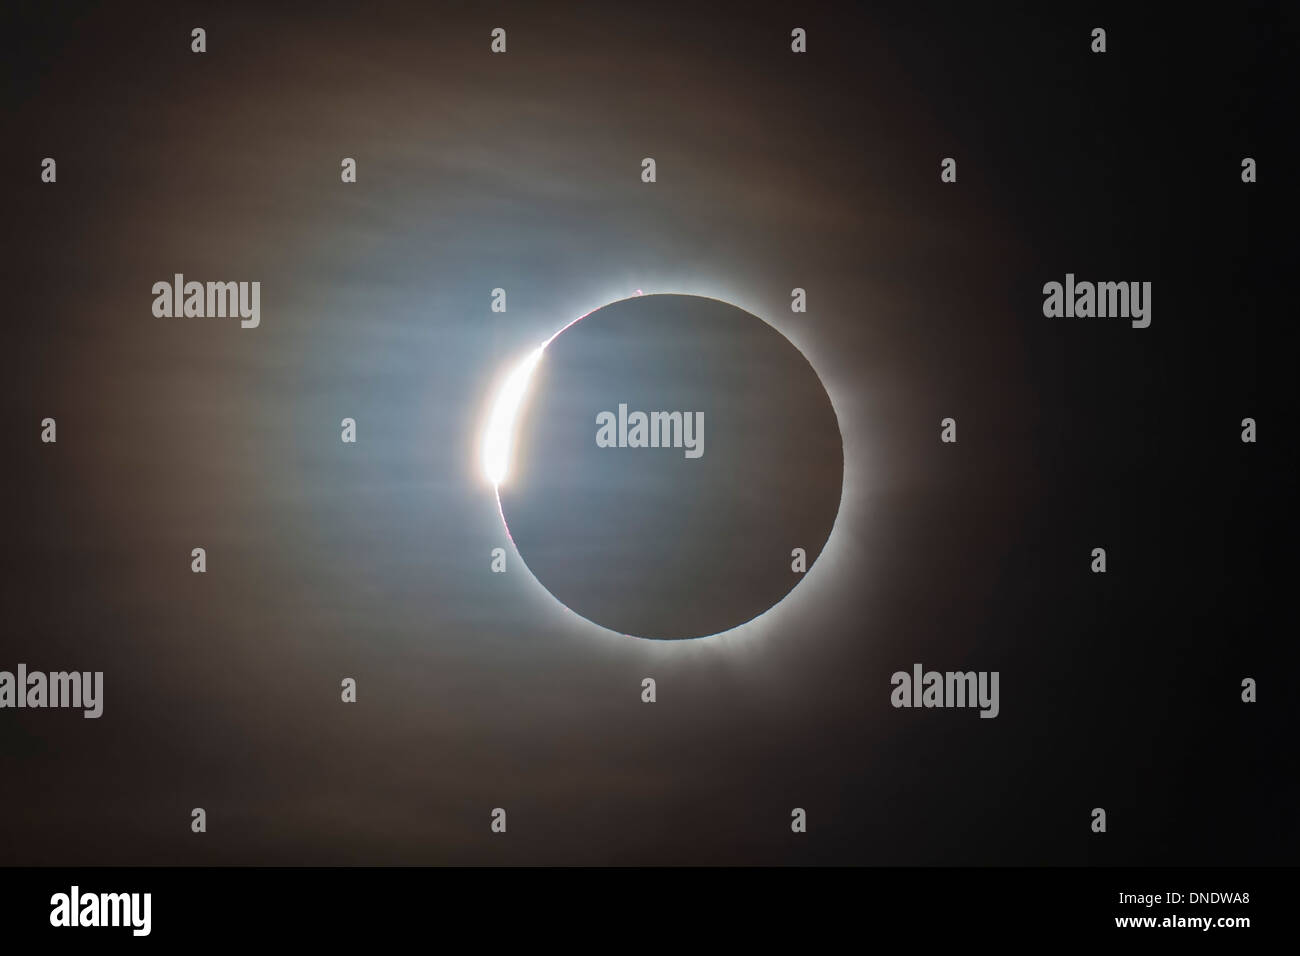 November 14, 2012 - The second diamond ring during the total eclipse of the Sun, Queensland, Australia. - Stock Image